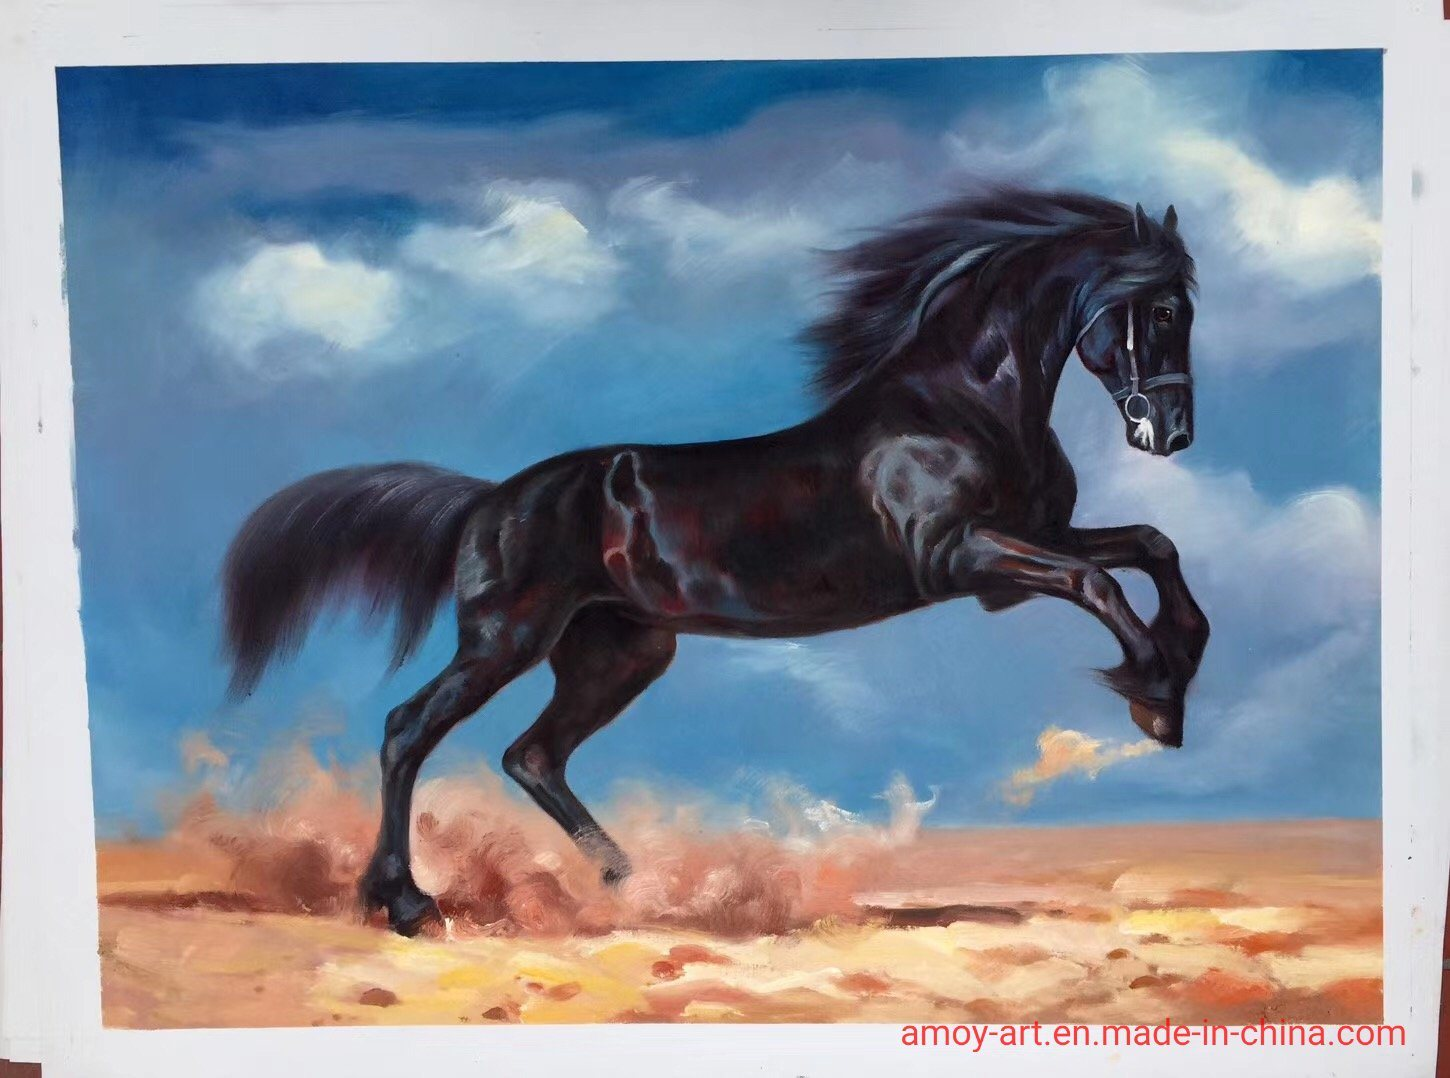 China Reproduction Of Realistic Running Horses Oil Painting On Canvas Chinese Oil Paintings And Animal Oil Paintings Price